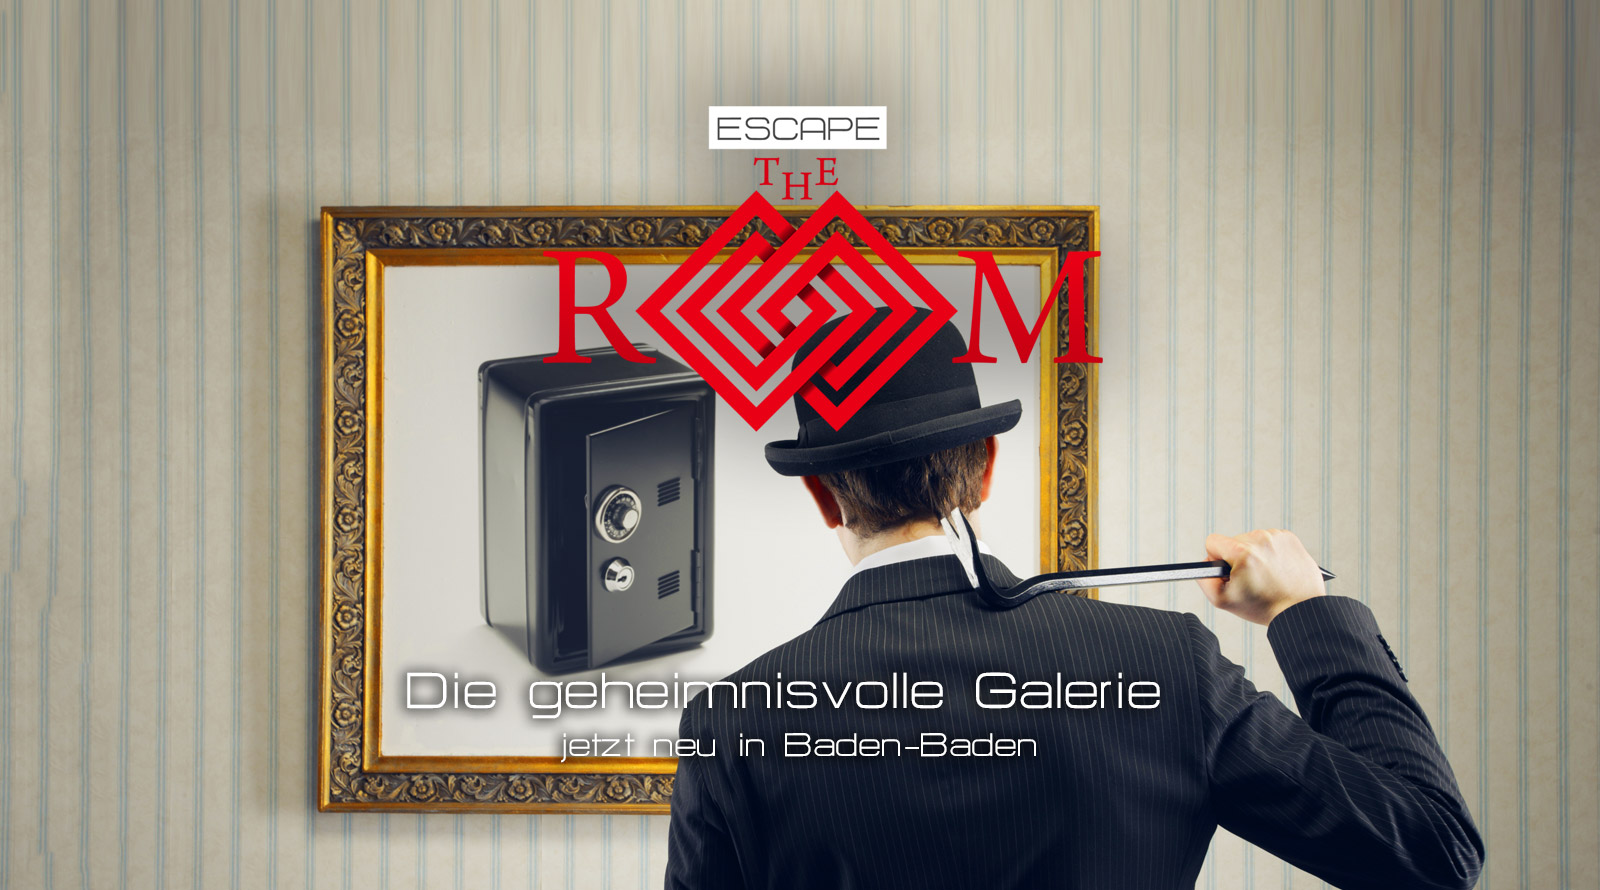 Escape the Room Exit Games Die geheimnisvolle Galerie